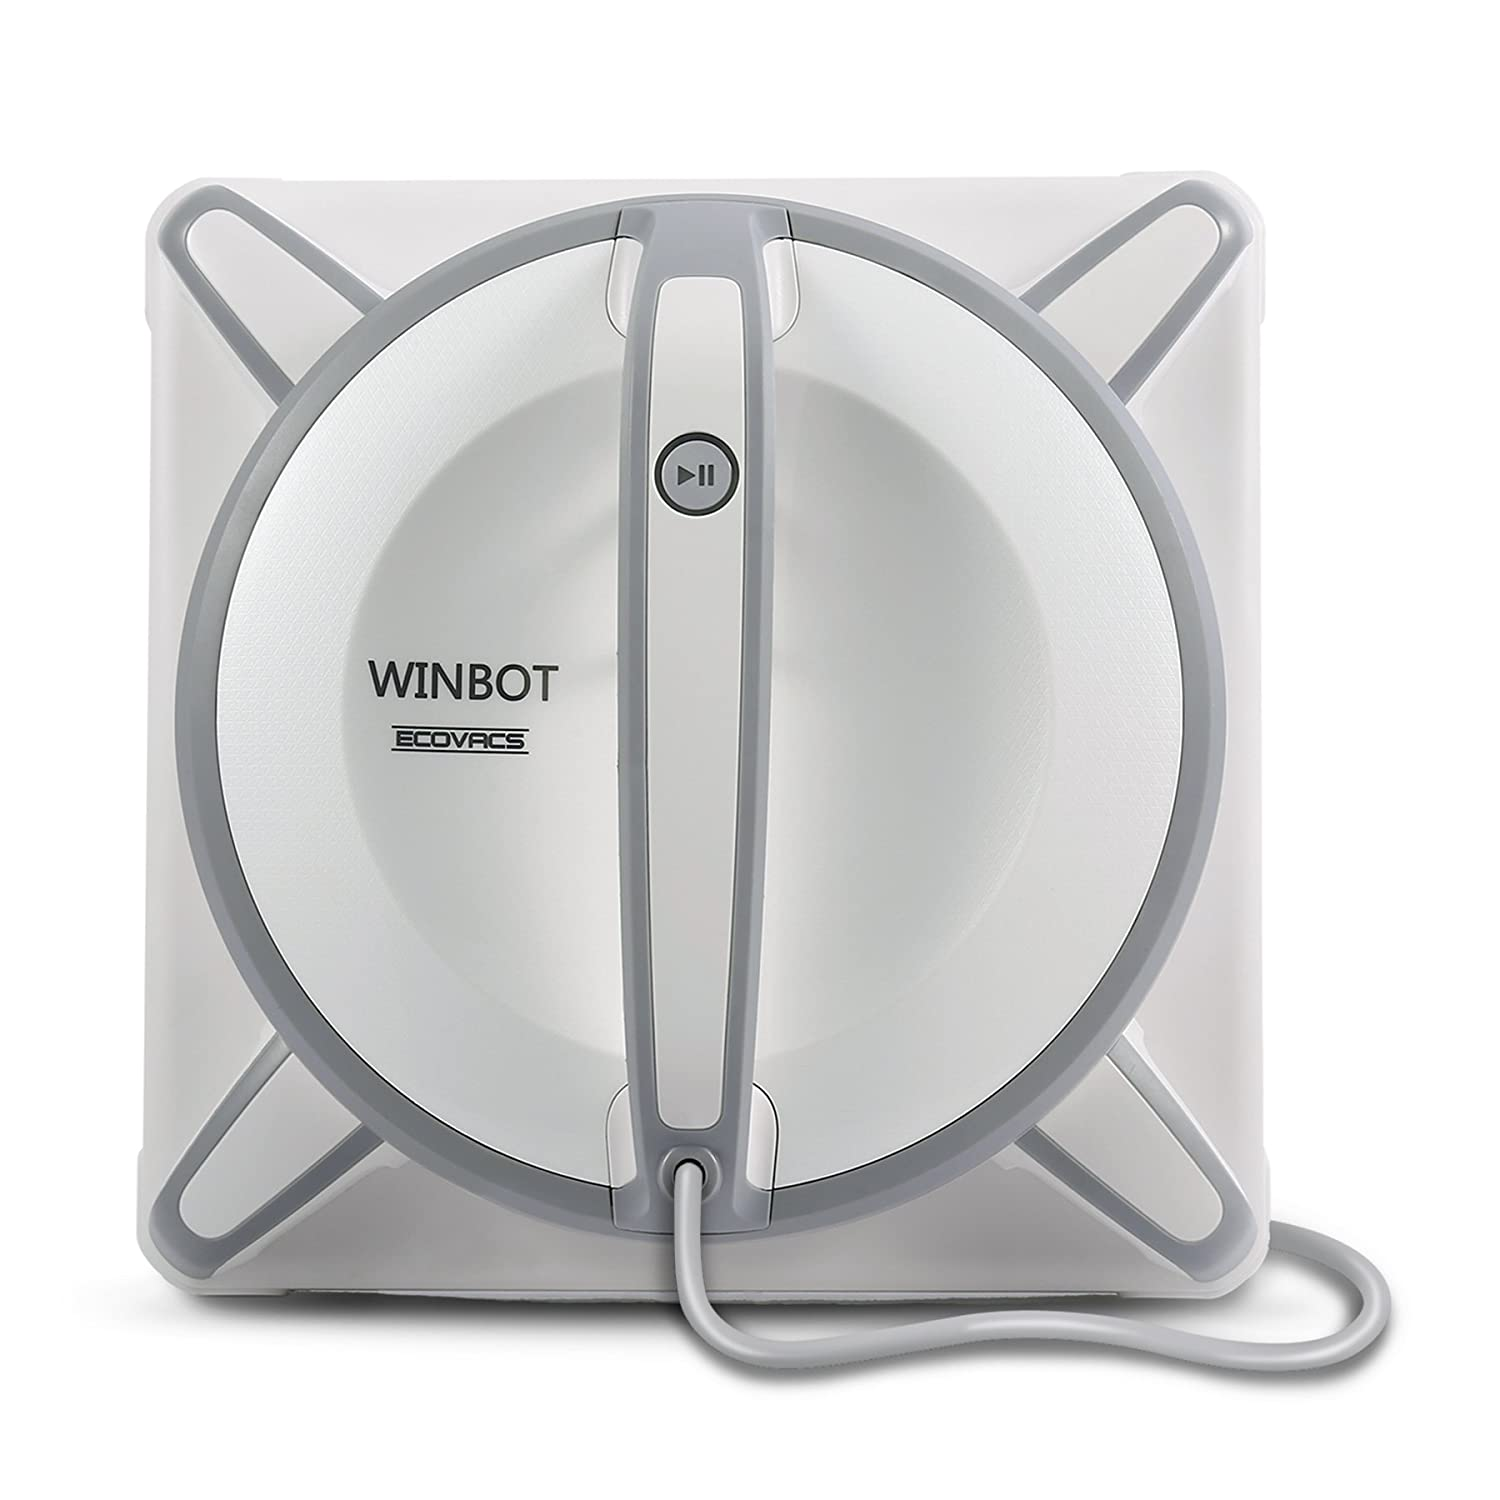 Winbot W930, Home Automation